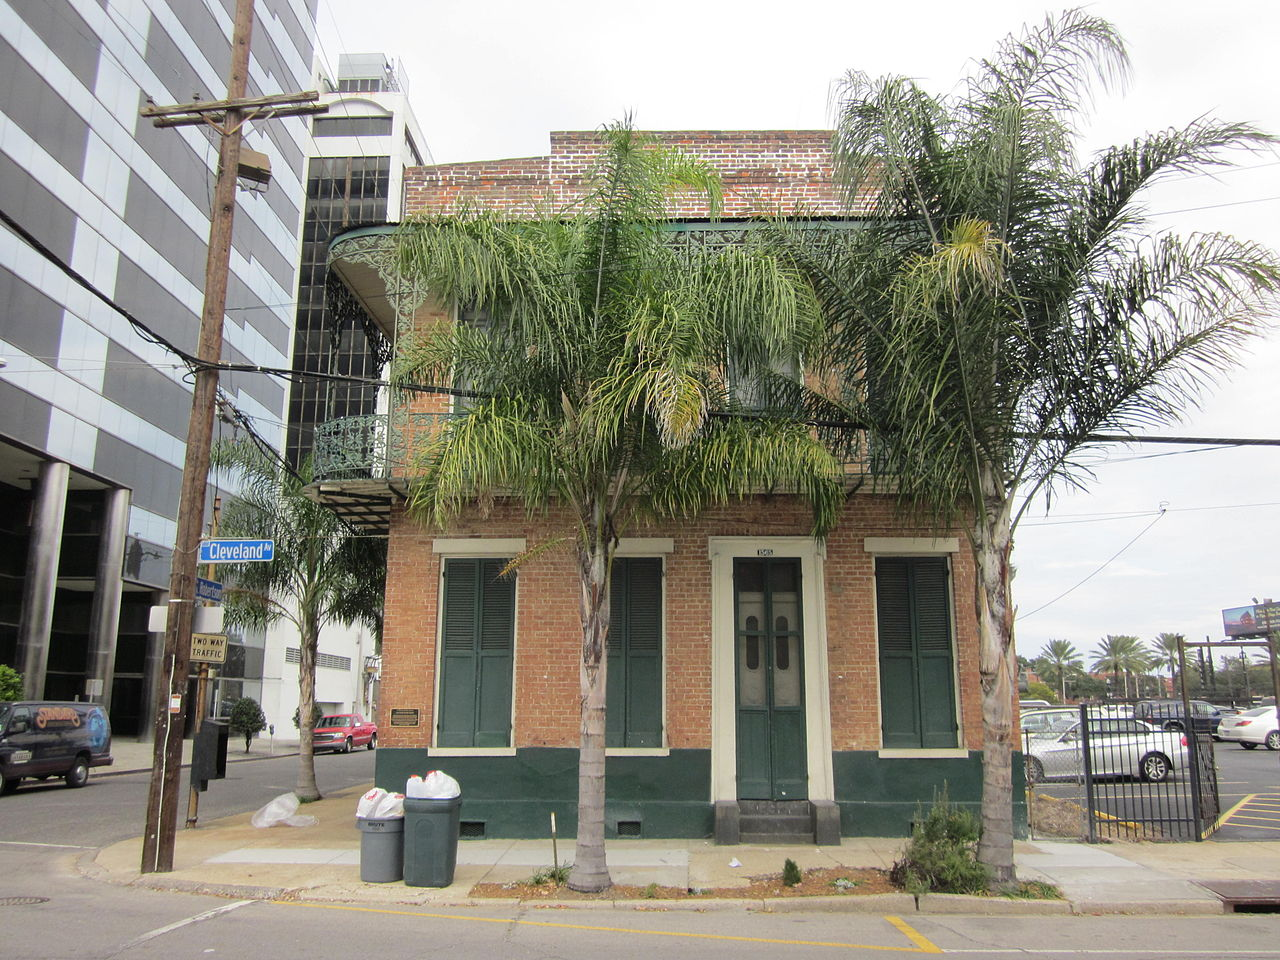 https://upload.wikimedia.org/wikipedia/commons/thumb/4/45/Hearn_House_NOLA_Cleveland_Front.jpg/1280px-Hearn_House_NOLA_Cleveland_Front.jpg